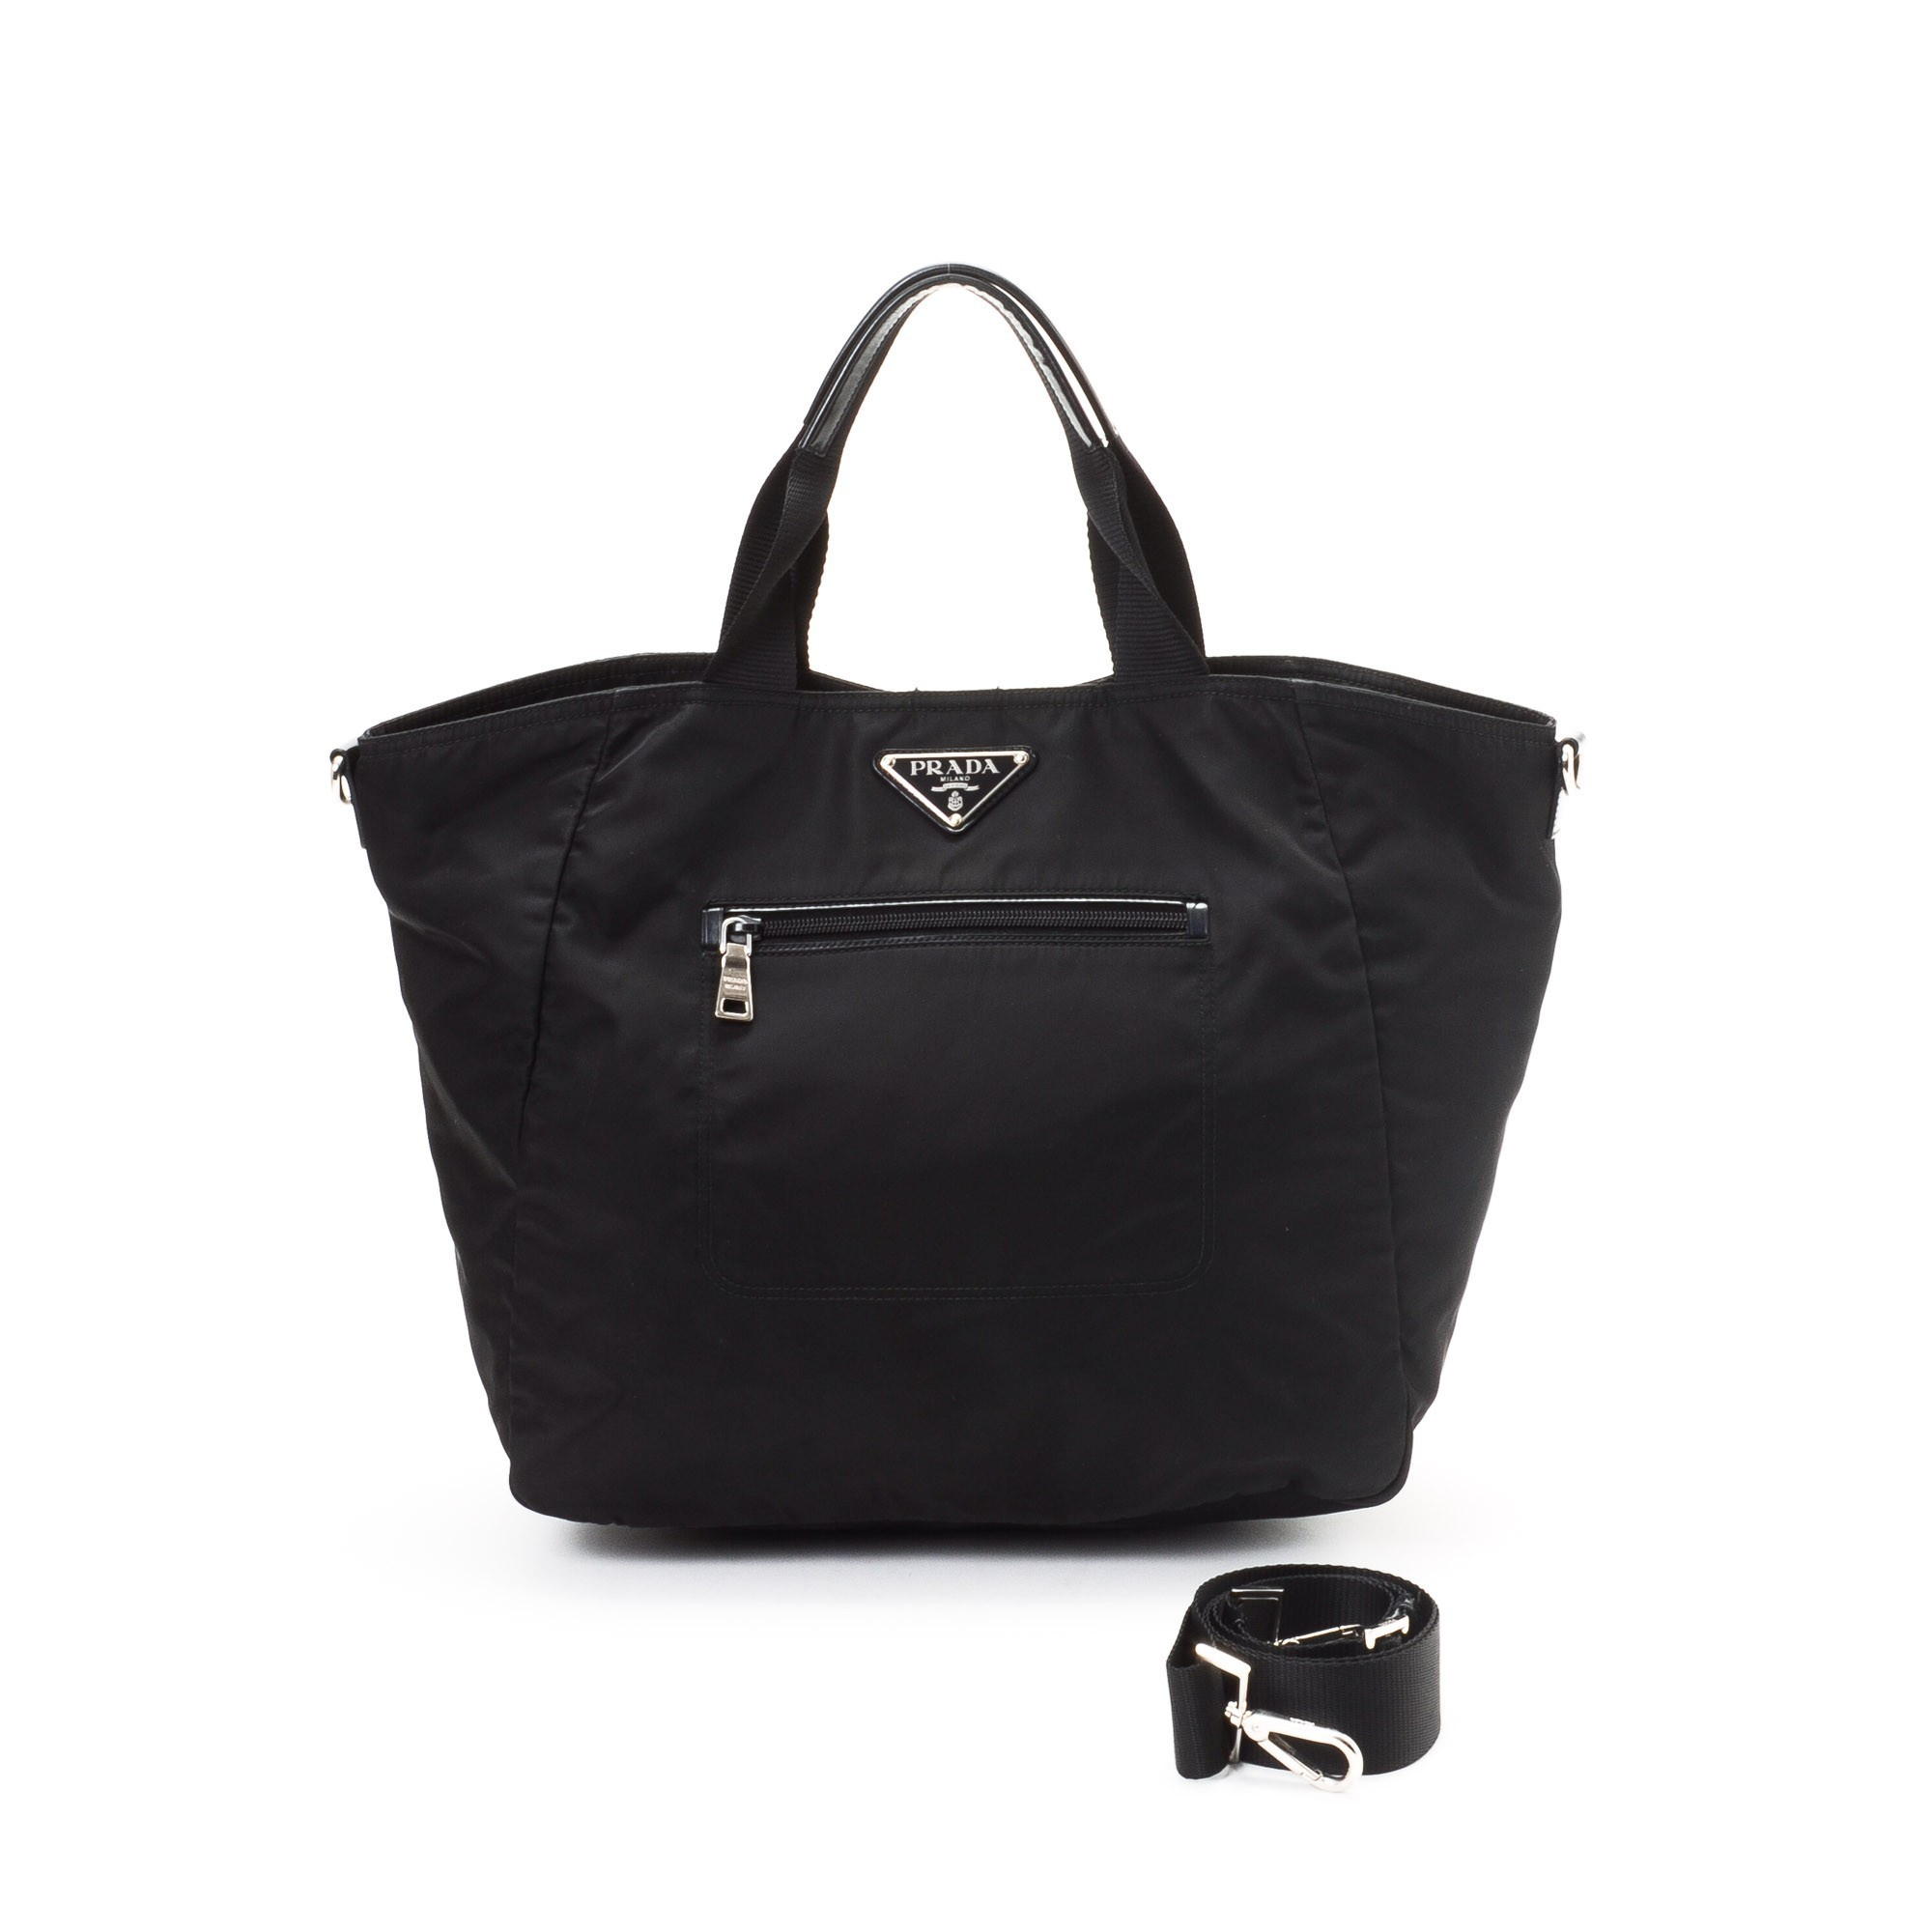 Prada Tessuto Two Way Bag Nylon Tote - LXR\u0026amp;CO Vintage Luxury